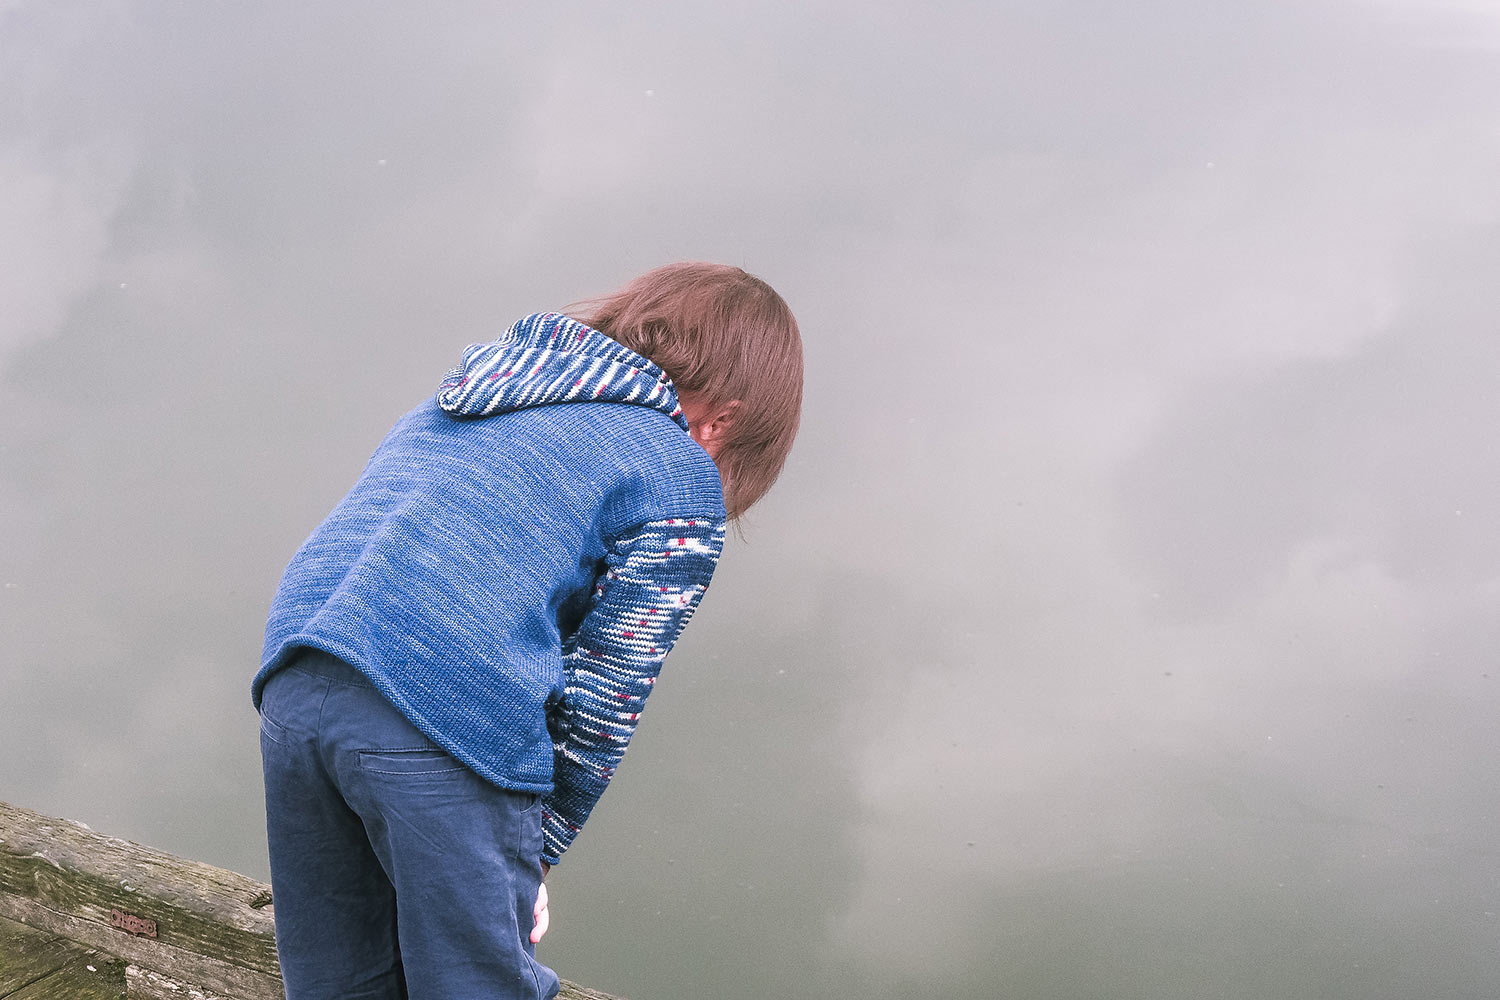 Back view of child looking into water reflecting the cloudy sky; child is wearing a blue hoodie with striped sleeves and hood.